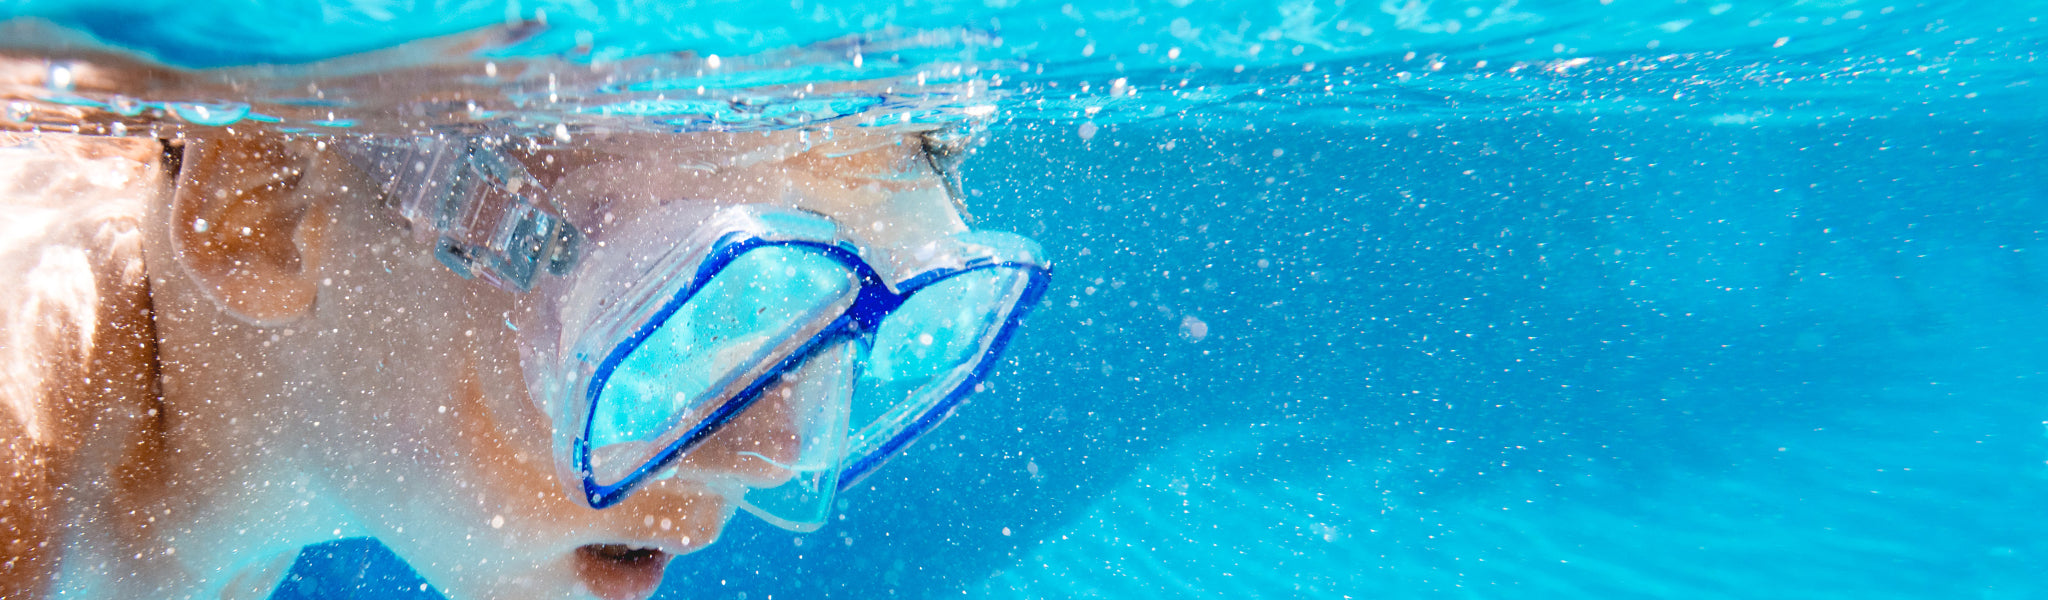 Child swimming in pool with snorkel mask underwater